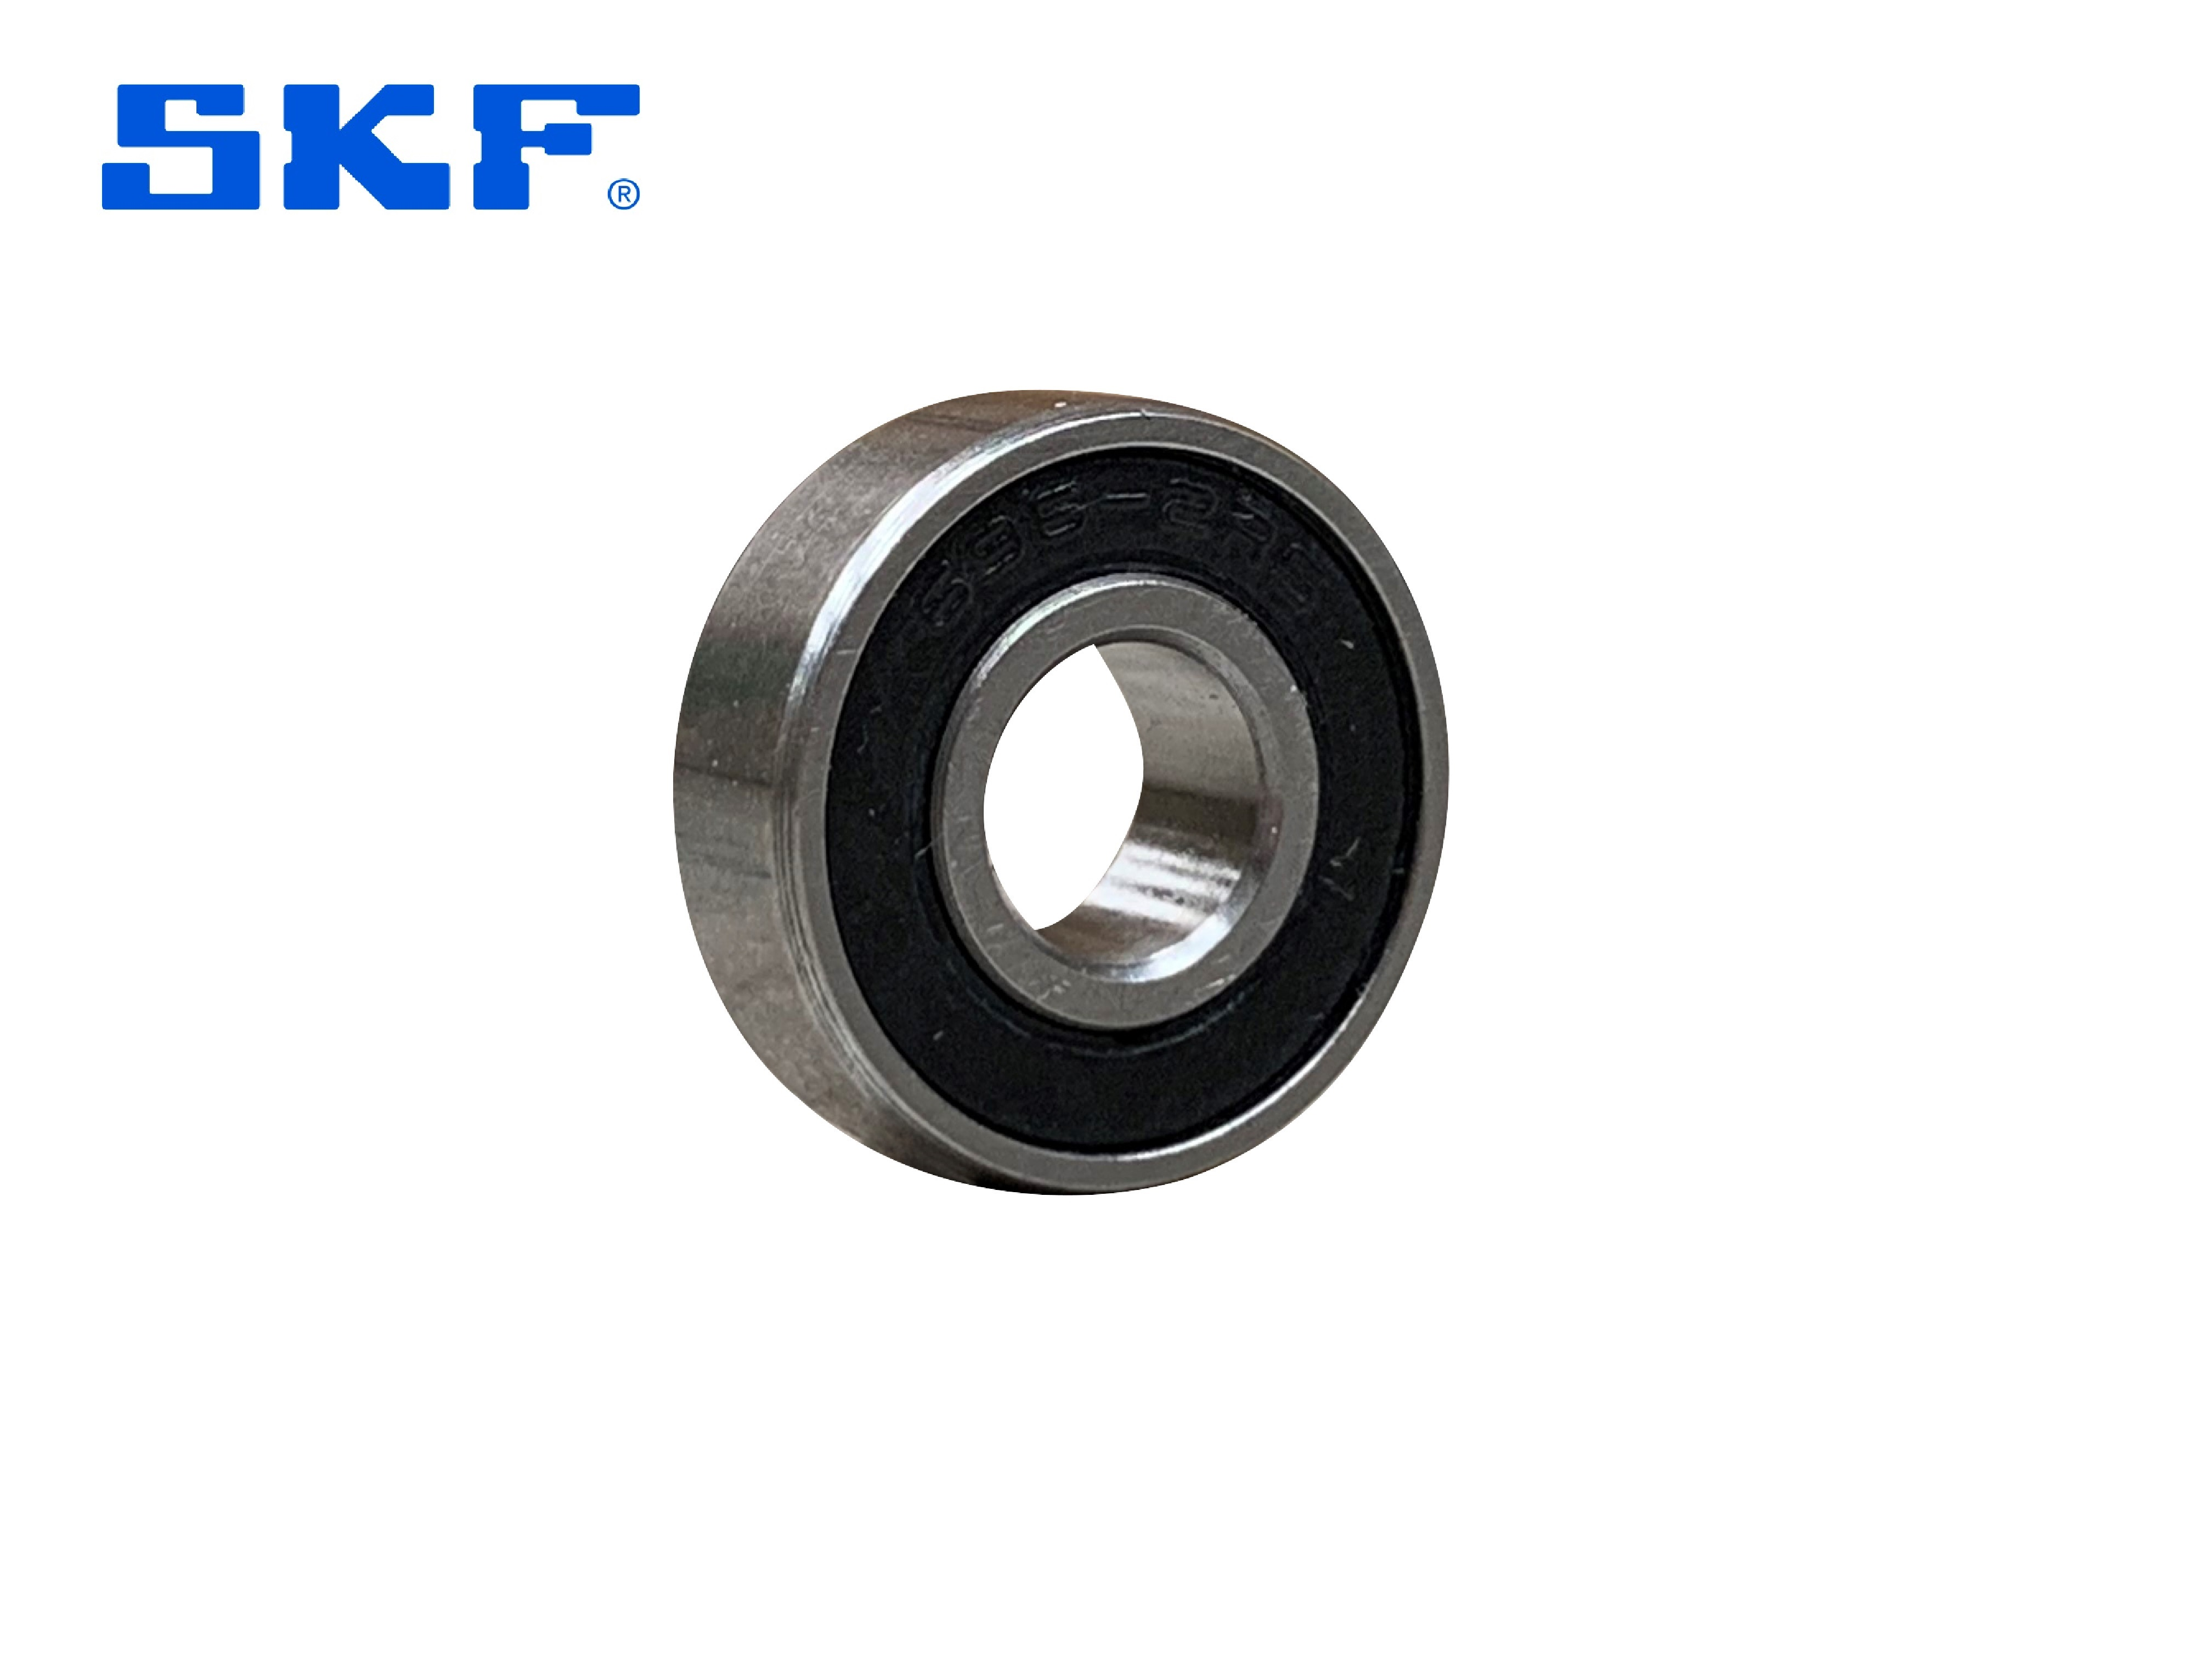 SKF 608-2RSH Sealed Miniature Ball Bearing 8mm x 22mm x 7mm